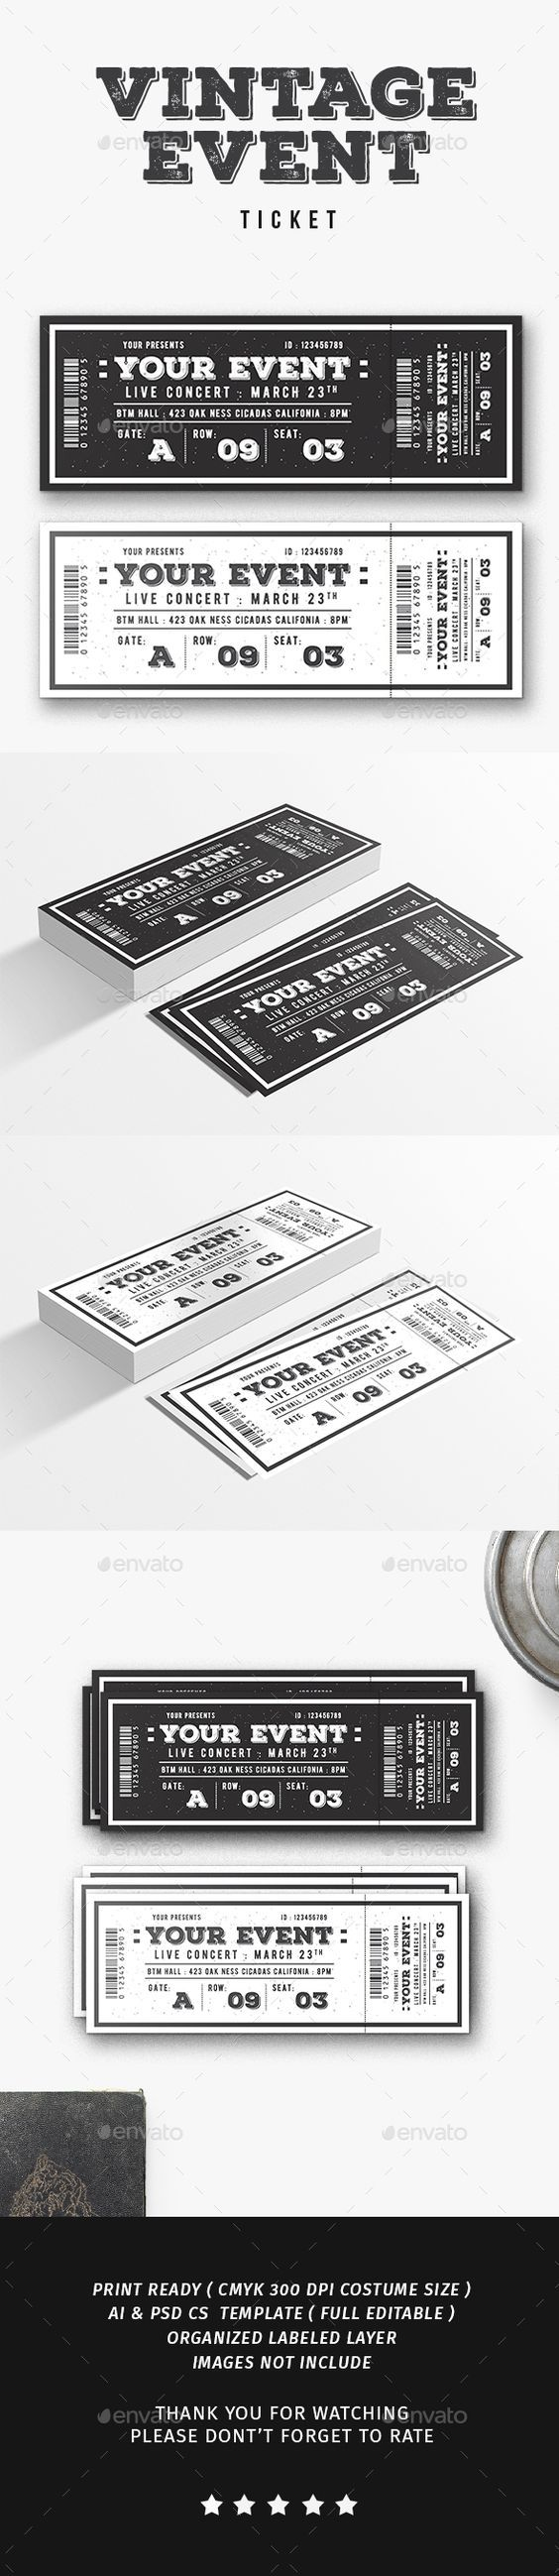 Concert Ticket Template Free Download Impressive Vintage Event Ticket  Event Ticket